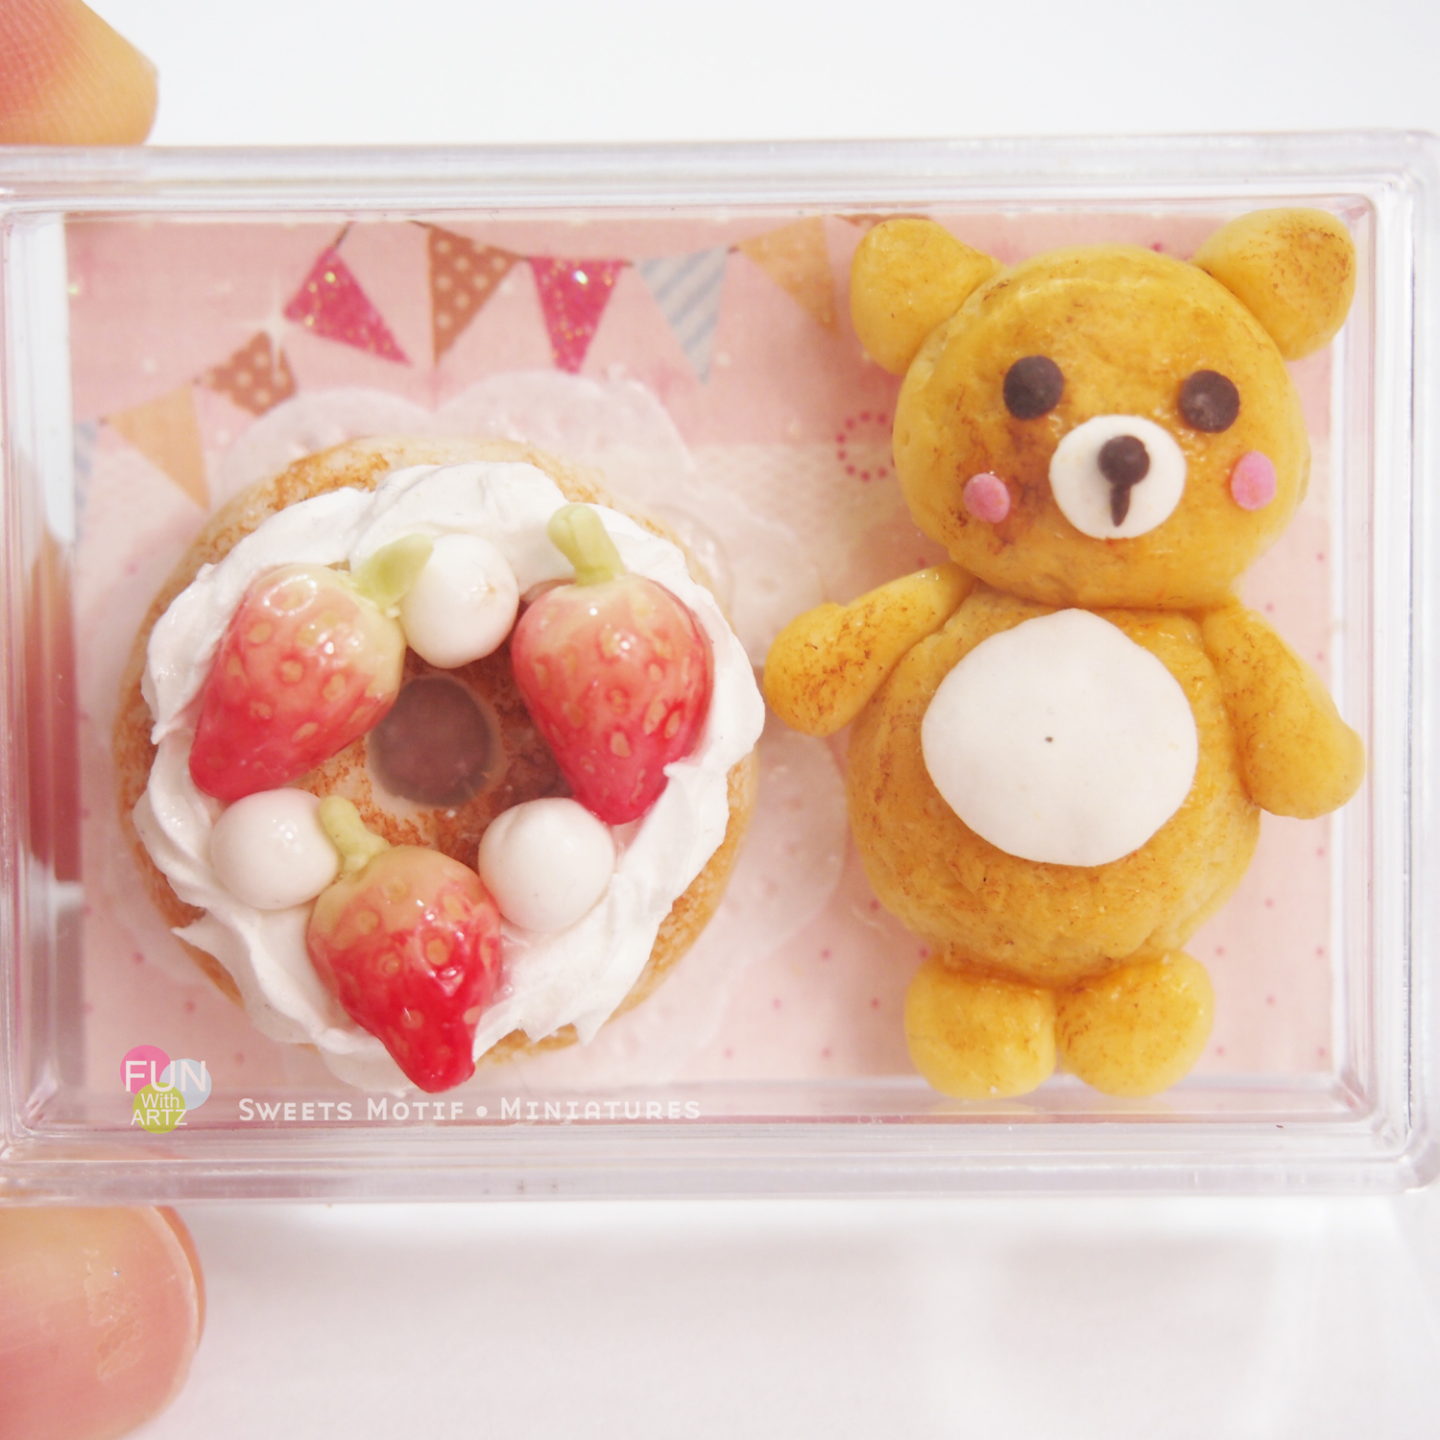 Dollhouse Display Rilakkuma Cookie and Strawberry Cake